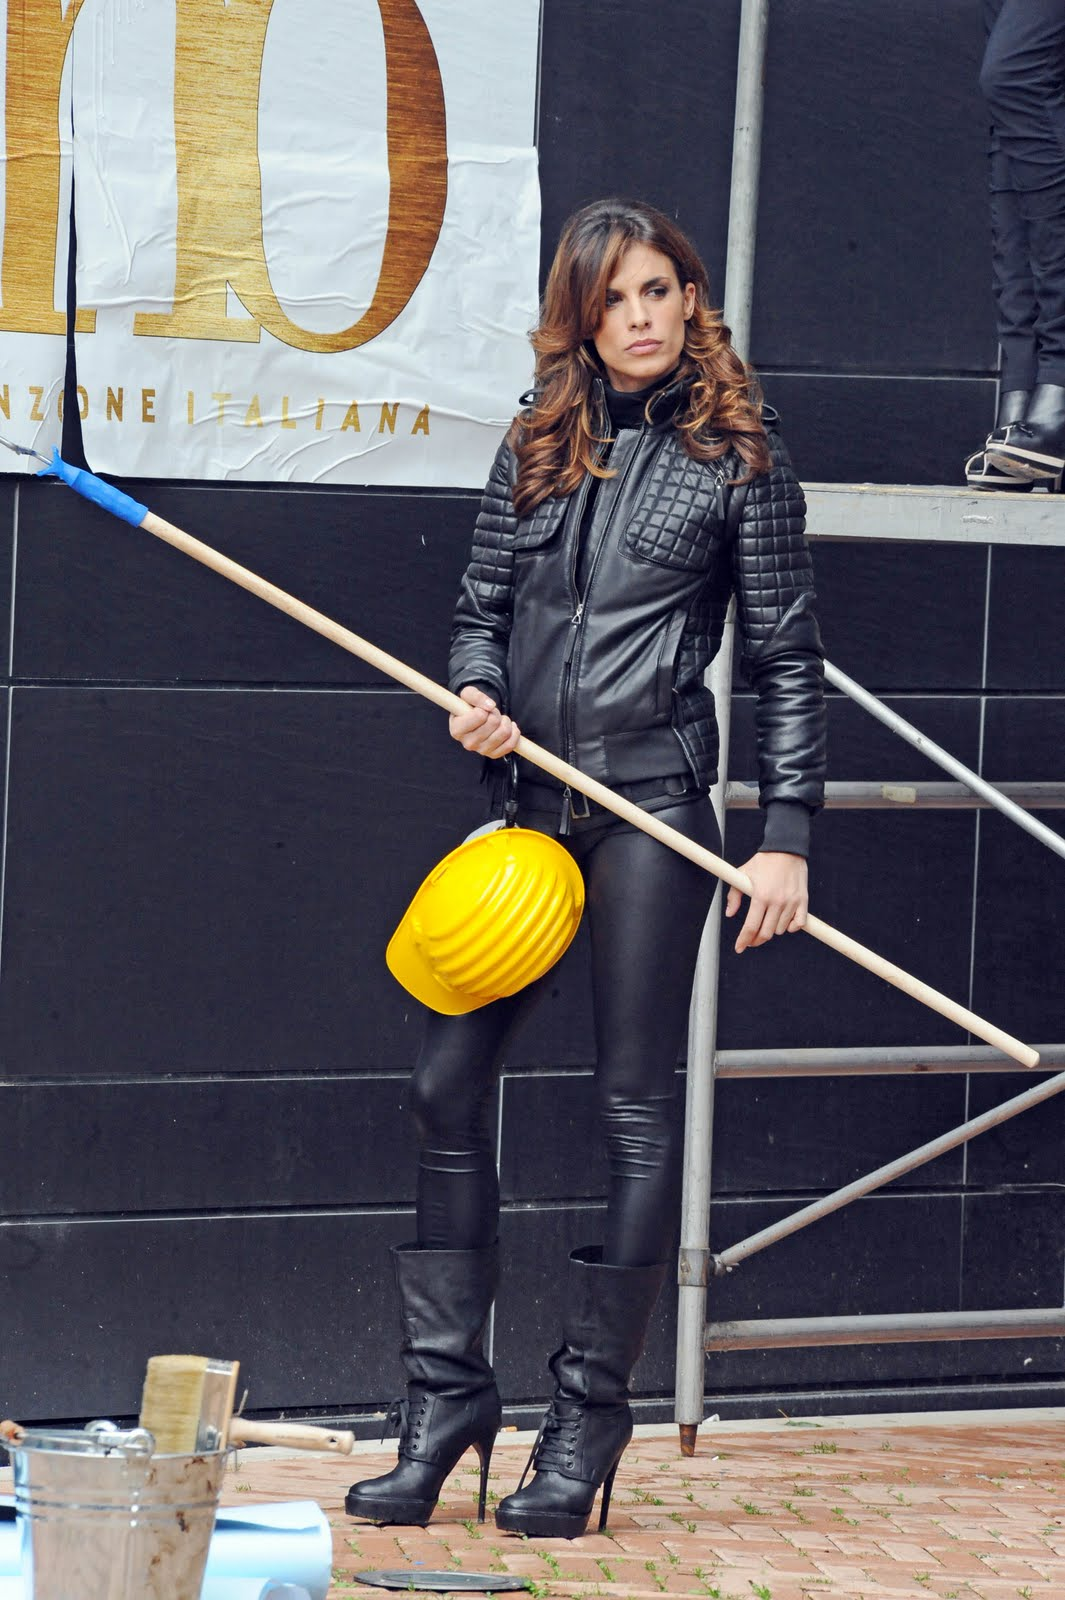 http://1.bp.blogspot.com/_KTqLxxzc3H0/TQJWOHboyNI/AAAAAAAARuc/g6YsaZ9D-ow/s1600/by_mah0ne-Elisabetta_Canalis_Filming_A_Commercial_For_The_Next_Festival_Of_Sanremo_In_Rome_08_12_10_004.jpg